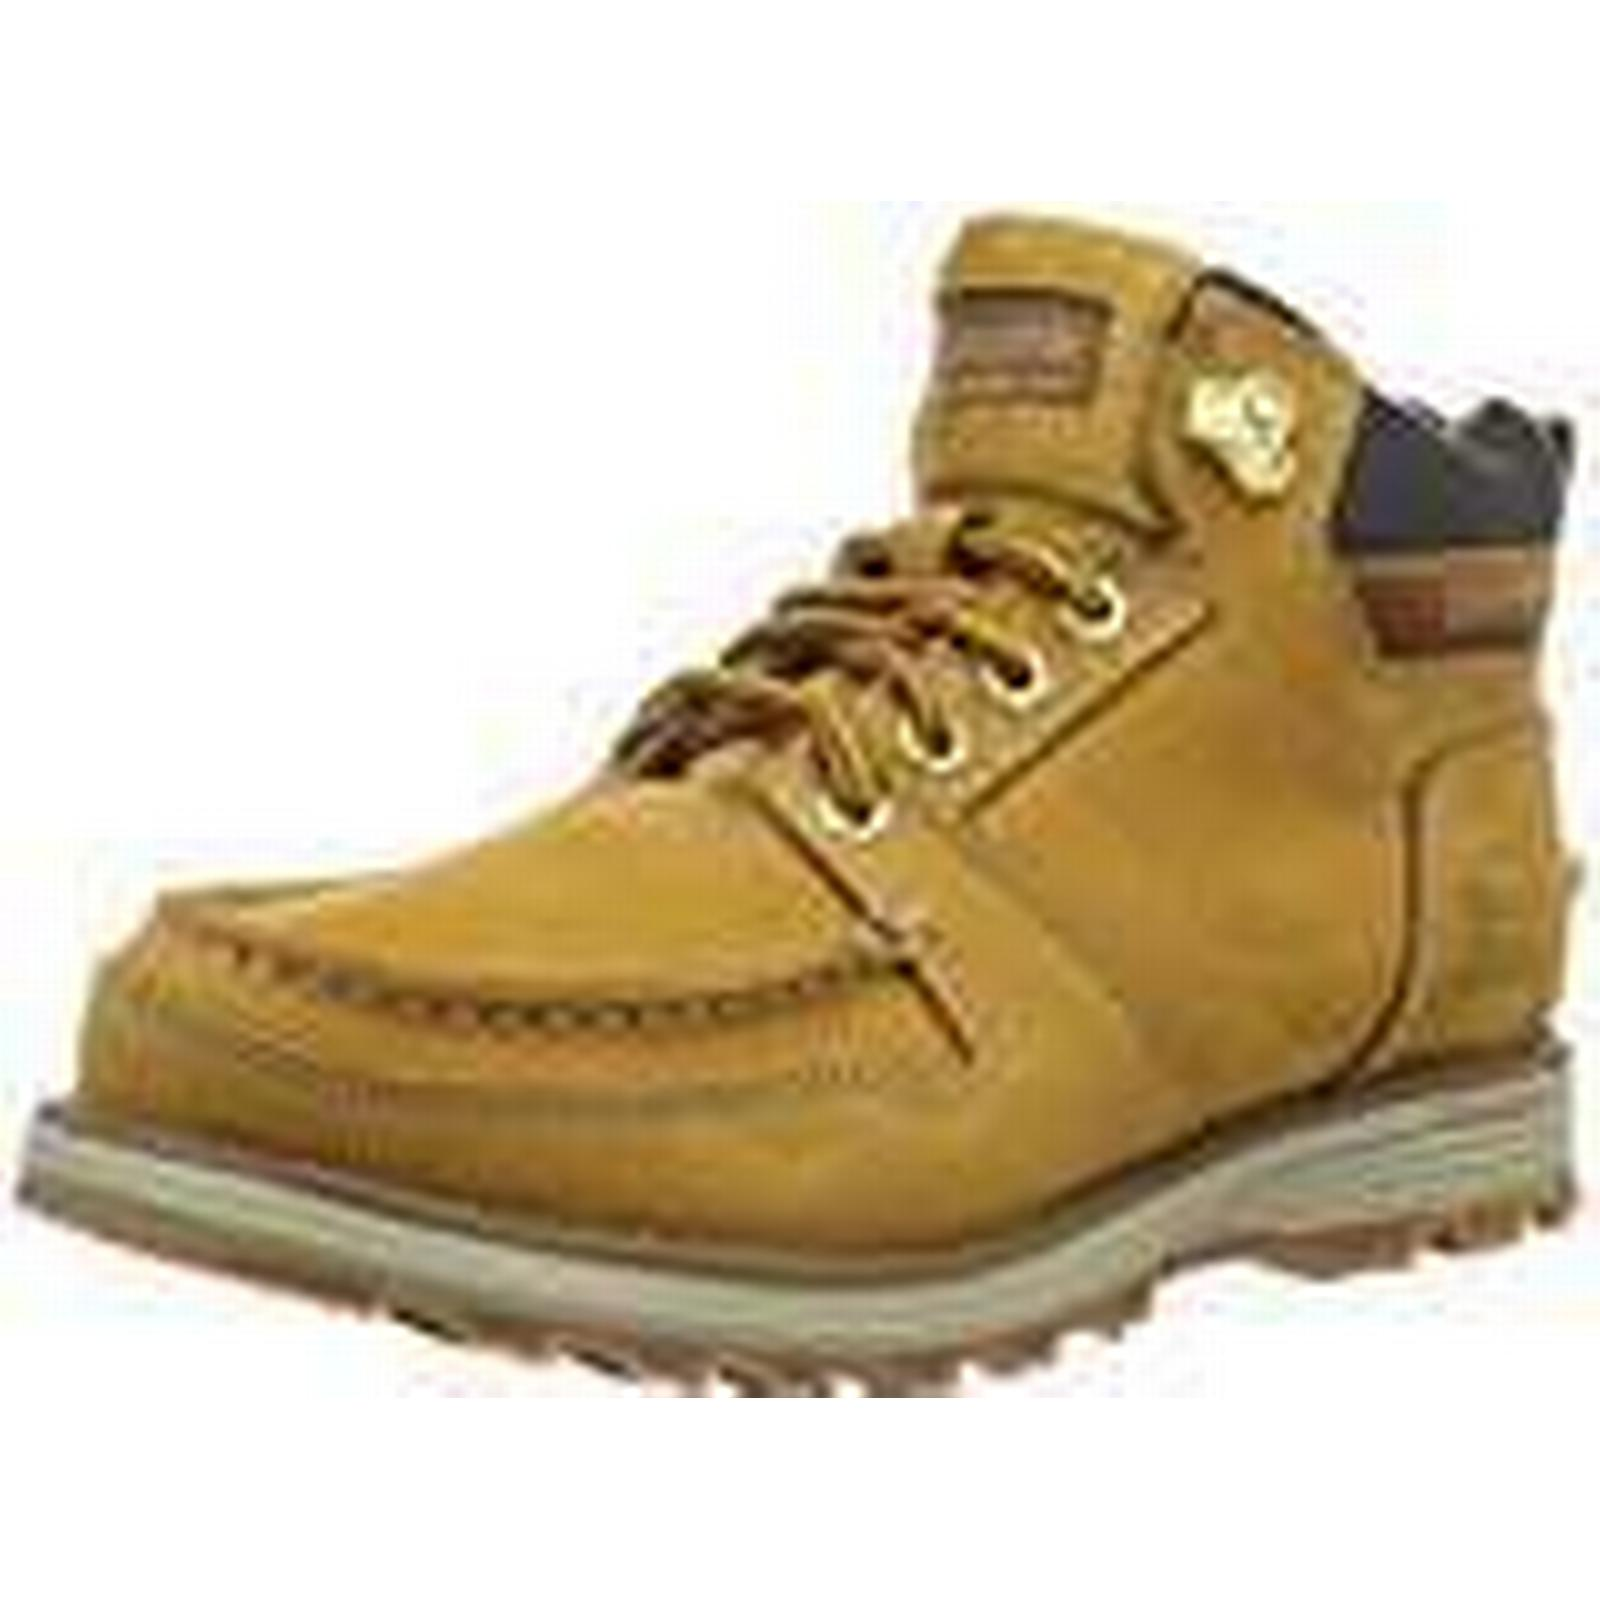 Dockers by Gerli Yellow Men's 39TI007-302910 Trekking And Hiking Boots Yellow Gerli Size: 9 6b0d17